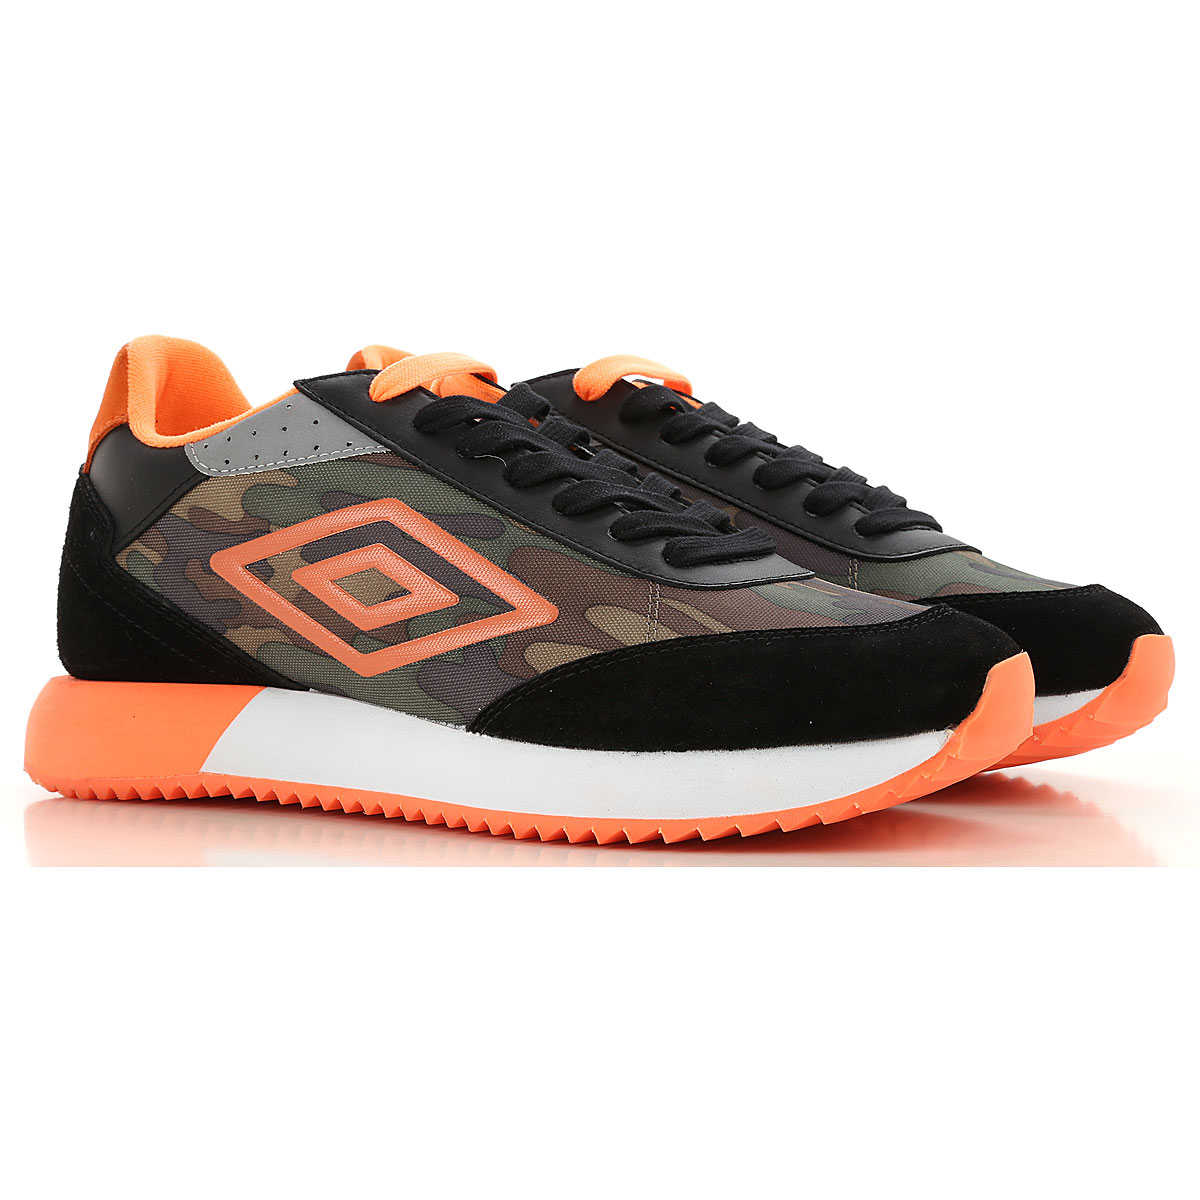 Image of Umbro Sneakers for Men, Orange, suede, 2017, 10 10.5 7.5 8 9